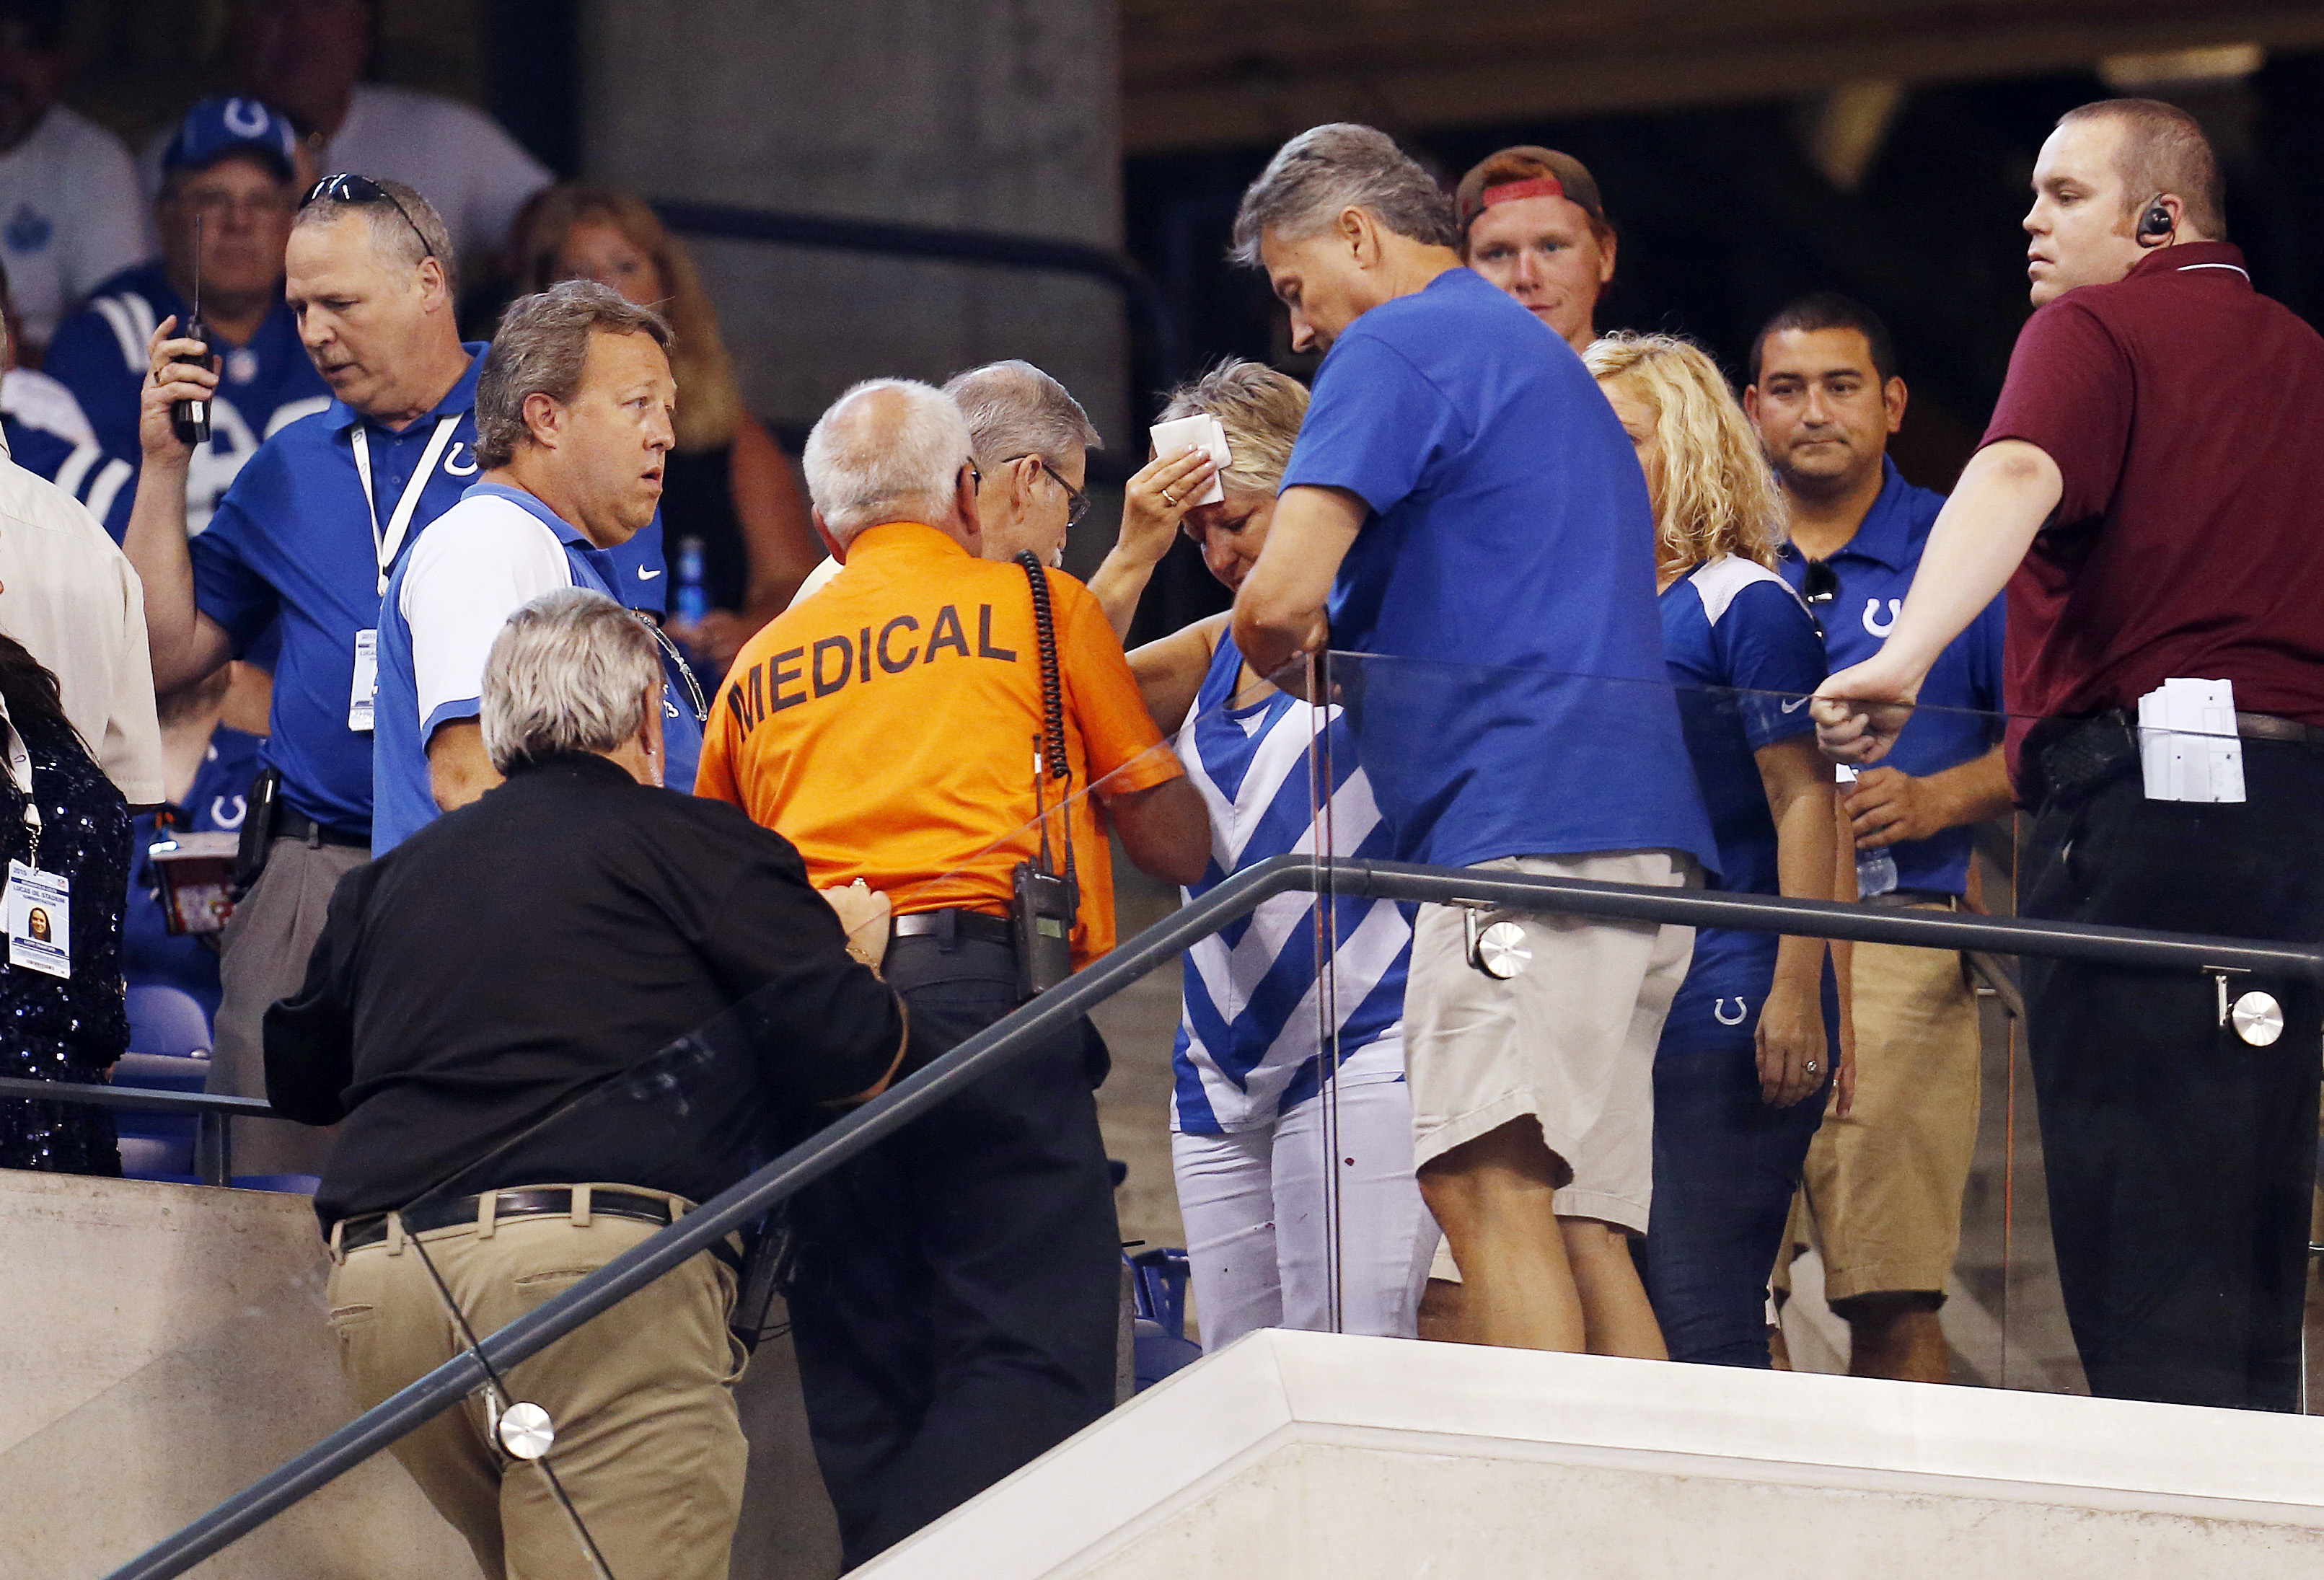 A fan is helped by emergency workers after getting injured by falling debris as the roof was opened during halftime of an NFL preseason football game between the Indianapolis Colts and the Cincinnati Bengals, Thursday, Sept. 3, 2015, in Indianapolis. (AP